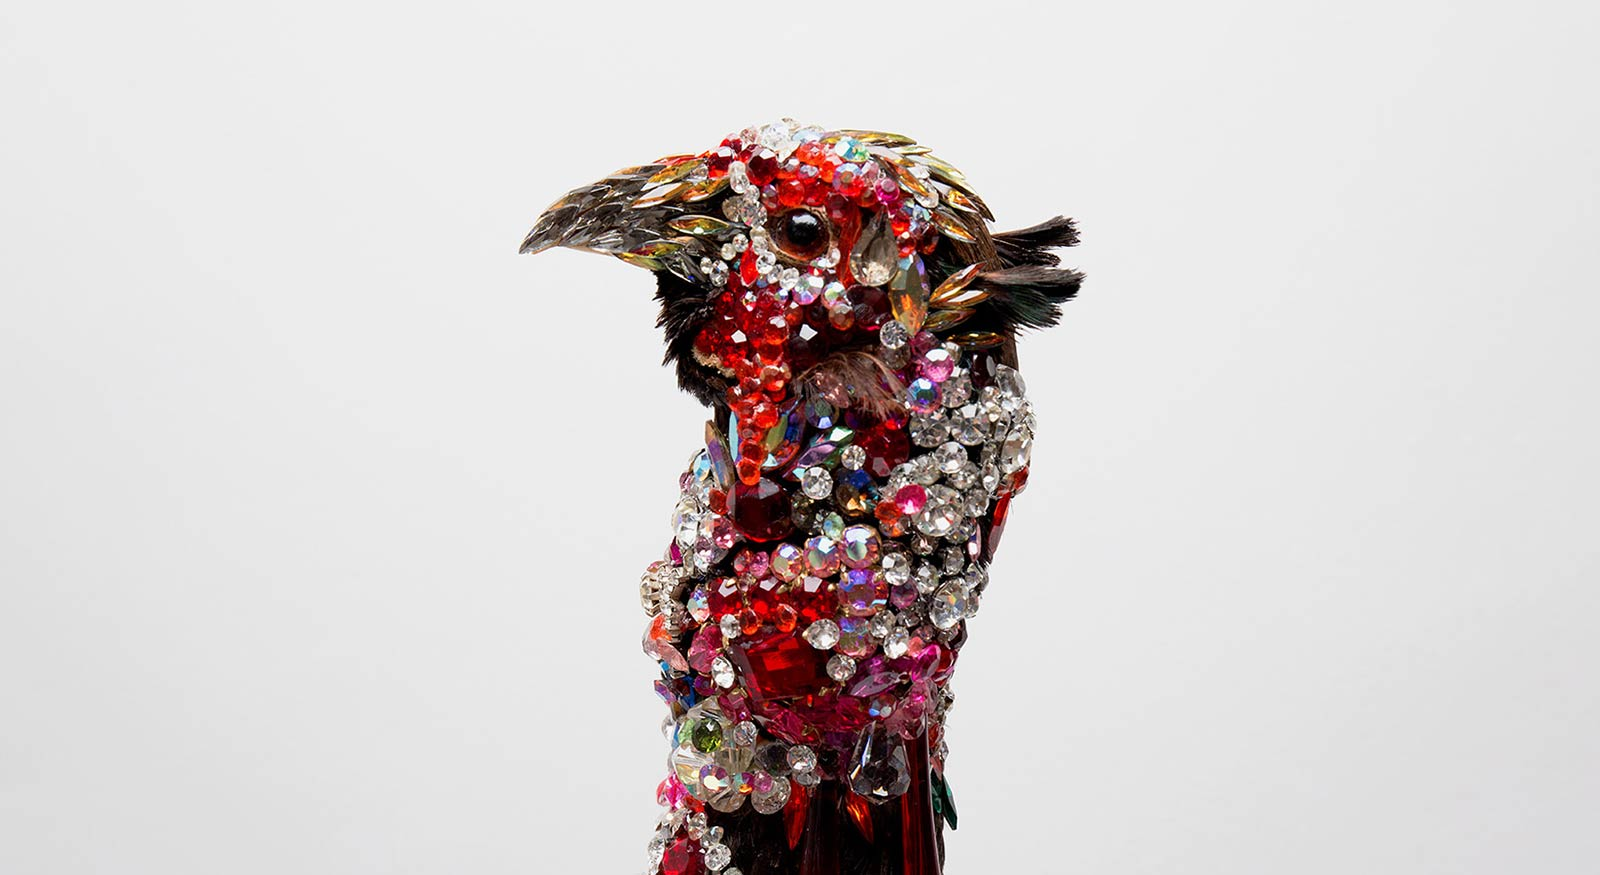 Angela Singer  Nepenthe , 2011 - 2015 (detail) Recycled vintage taxidermy pheasant, gems, mixed media 330 x 190 x 190 mm   _______